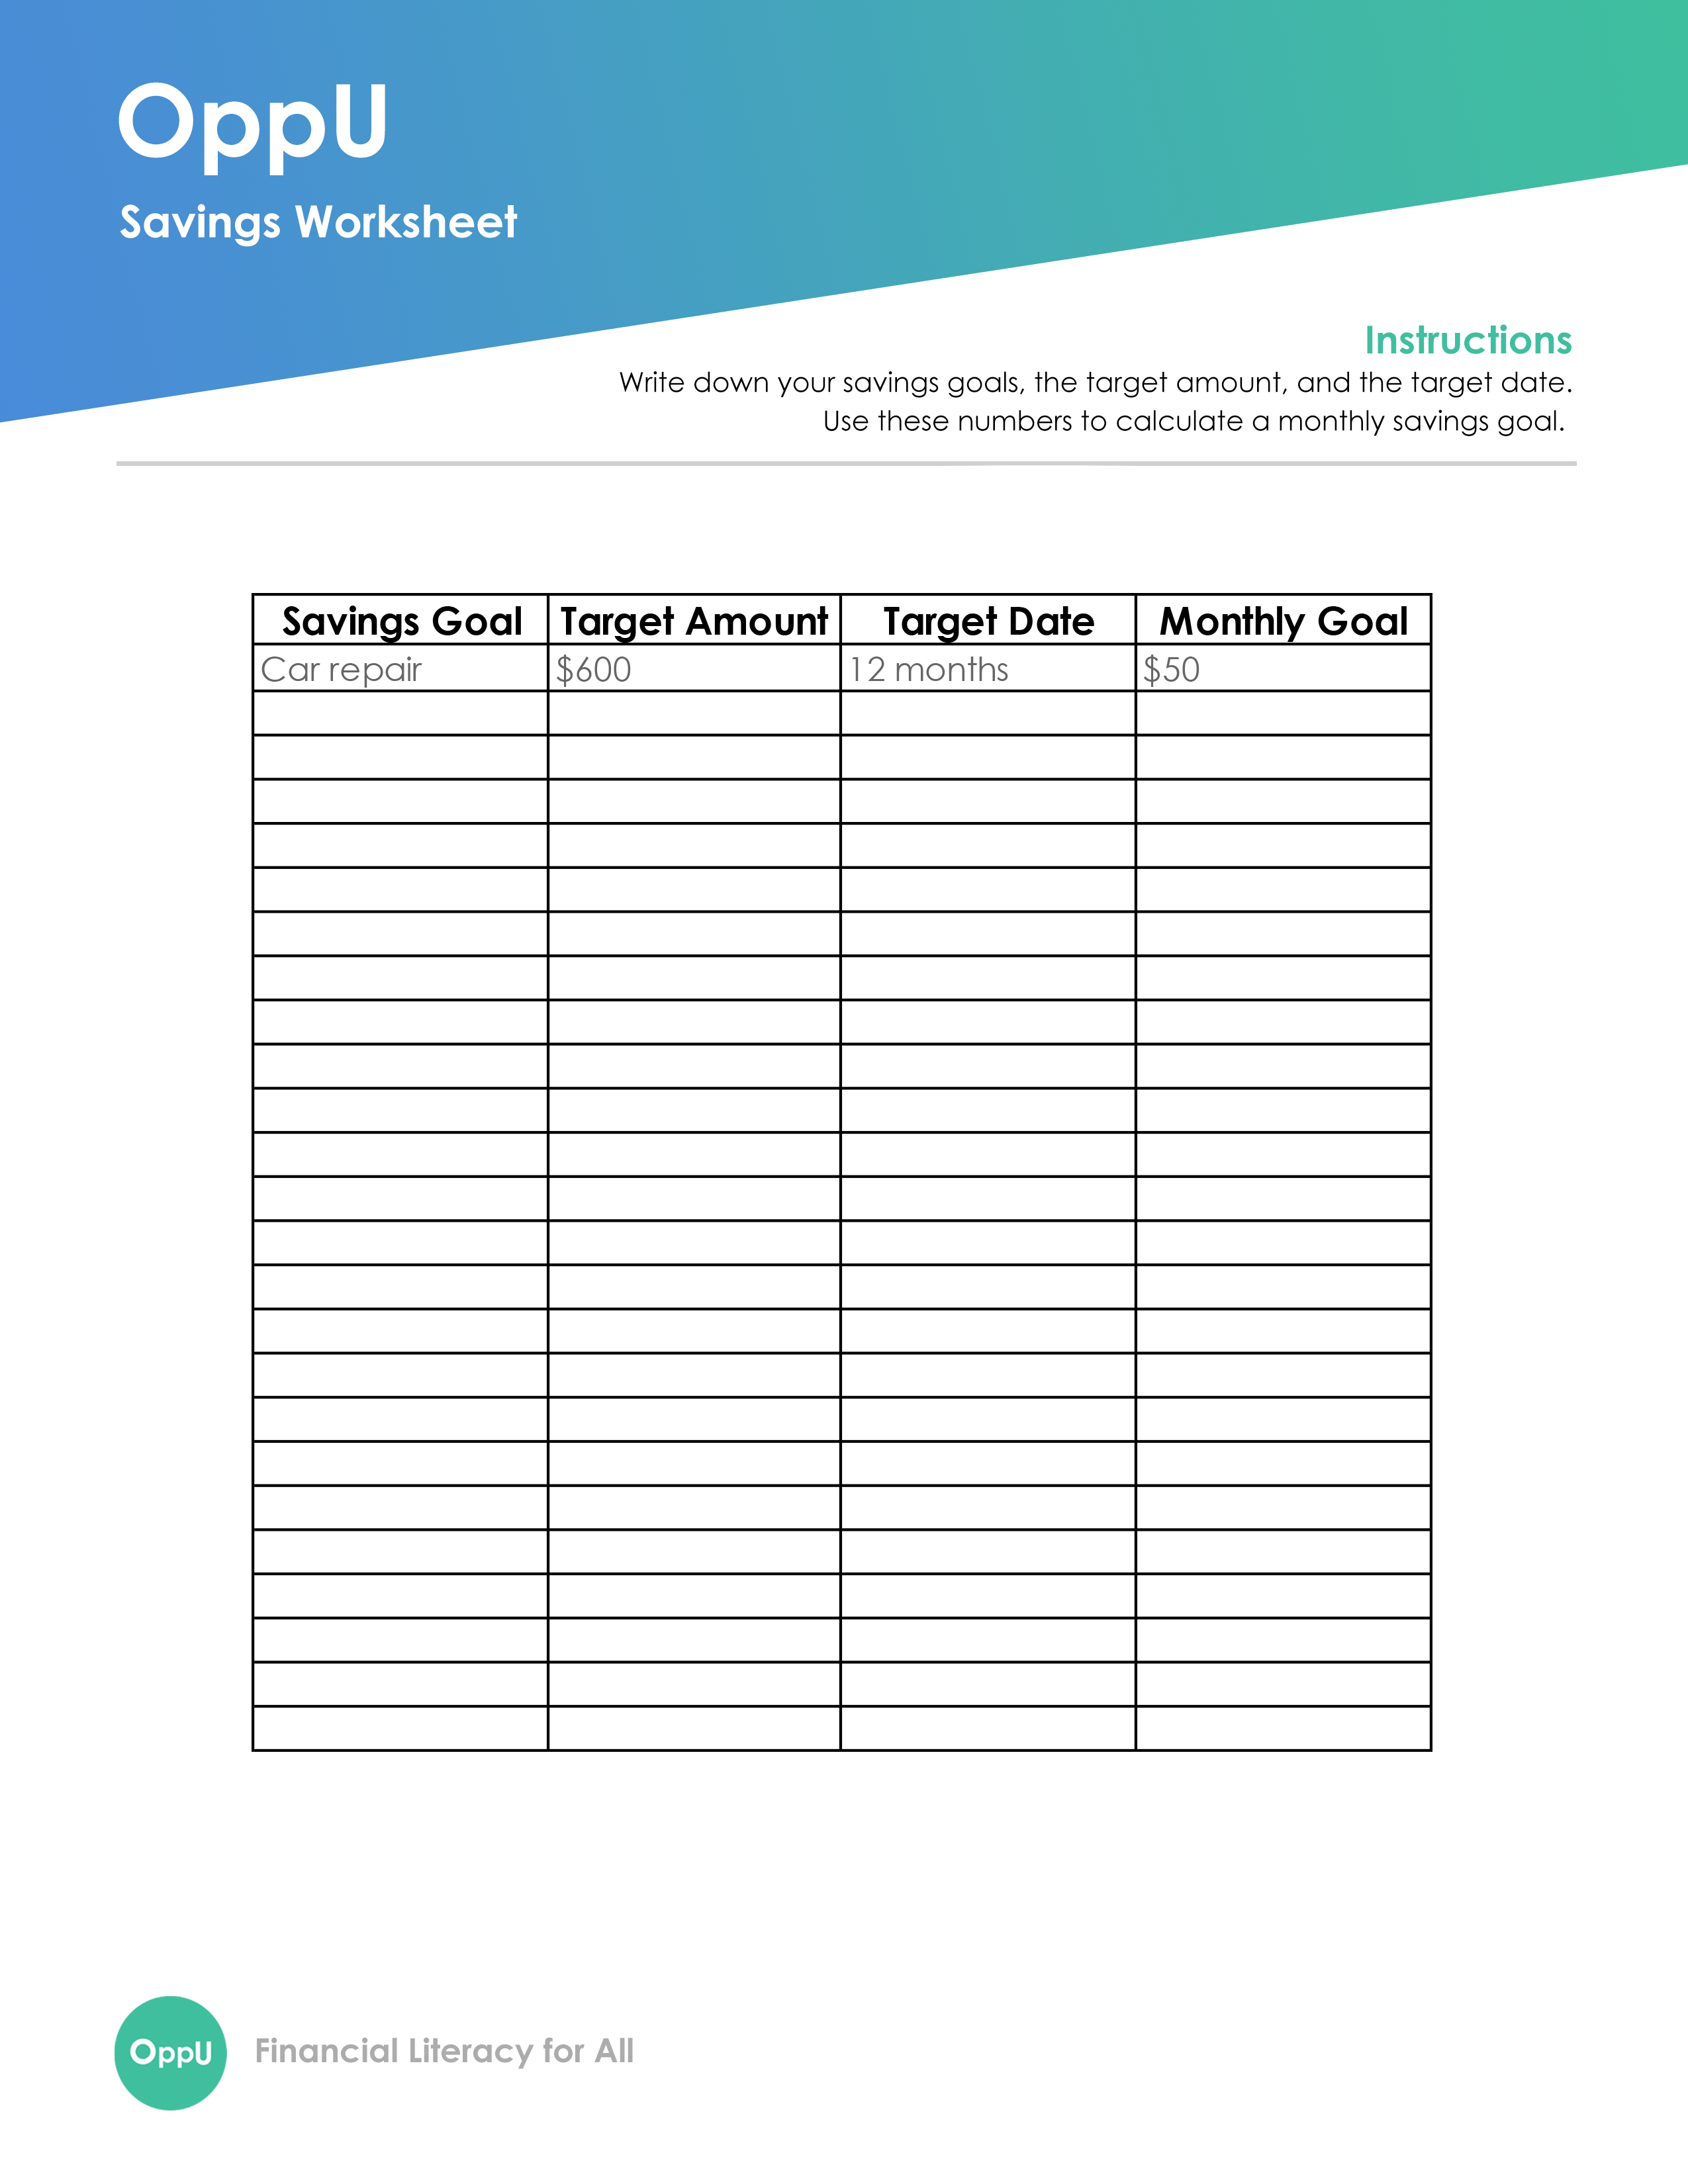 Free Savings Worksheet To Rock Your Money Goals In 4 Easy